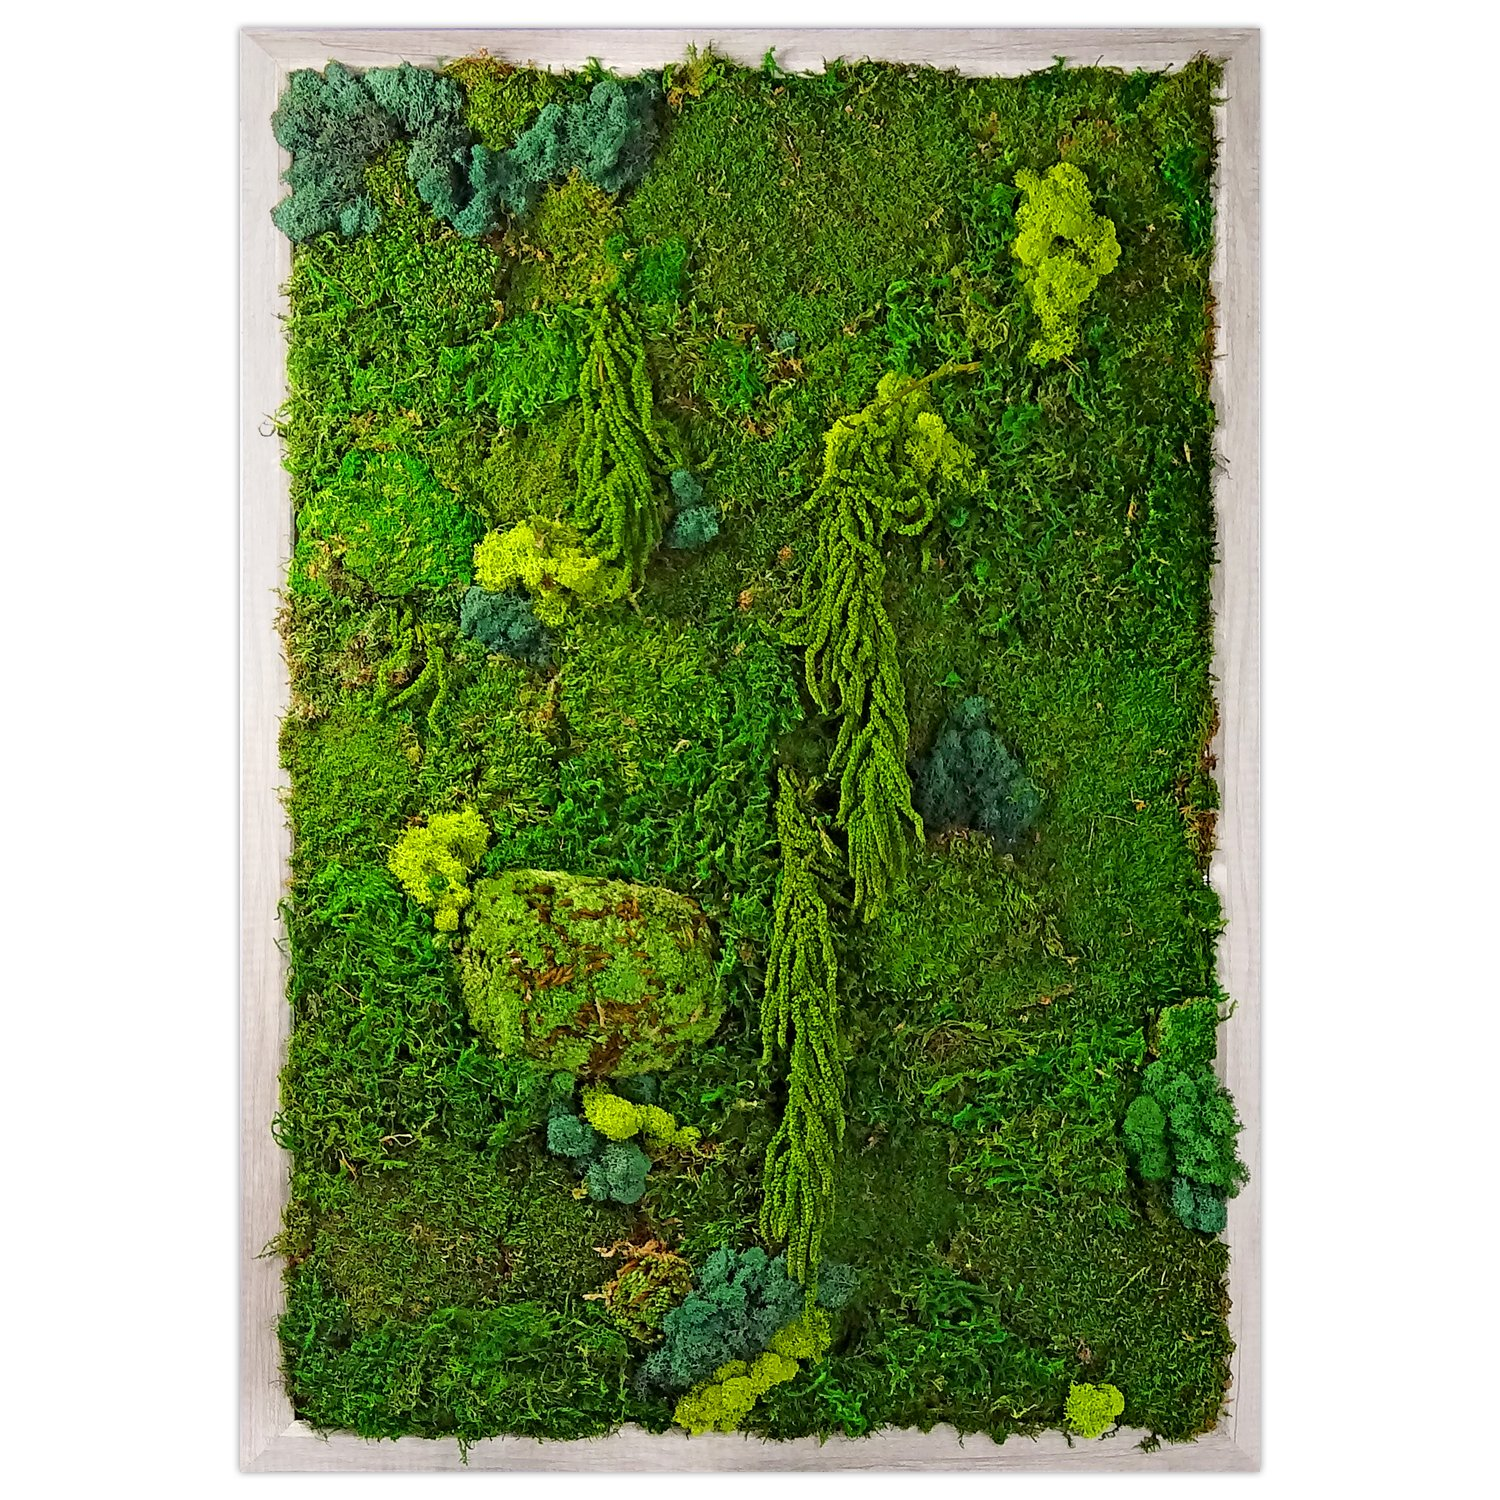 Preserved Moss Living Wall Garden - Photo 1 of 1